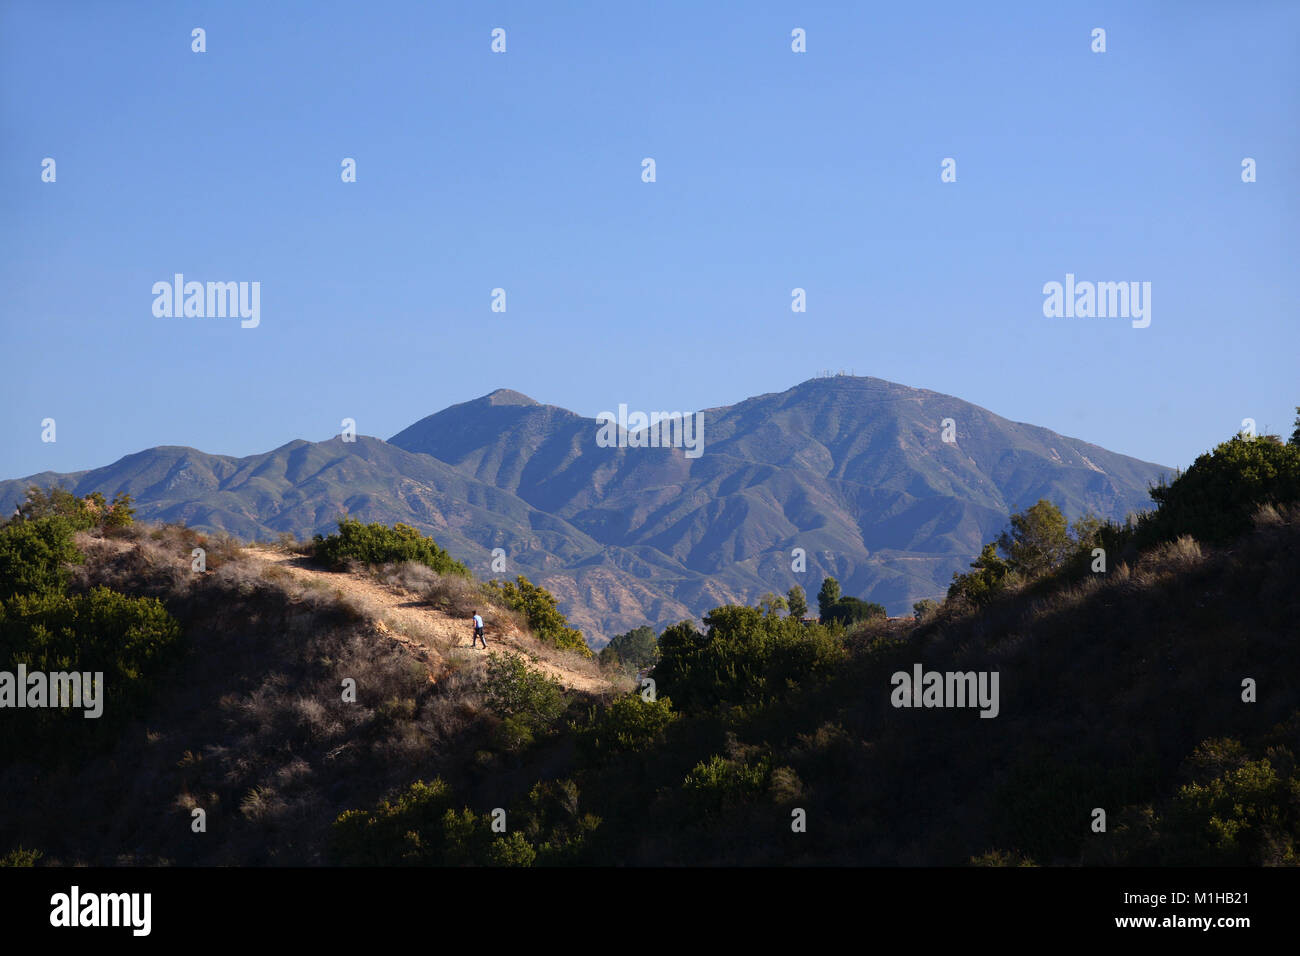 Hiker on trail in James Dilley Greenbelt preserve with view of Saddleback mountains Laguna Beach California - Stock Image